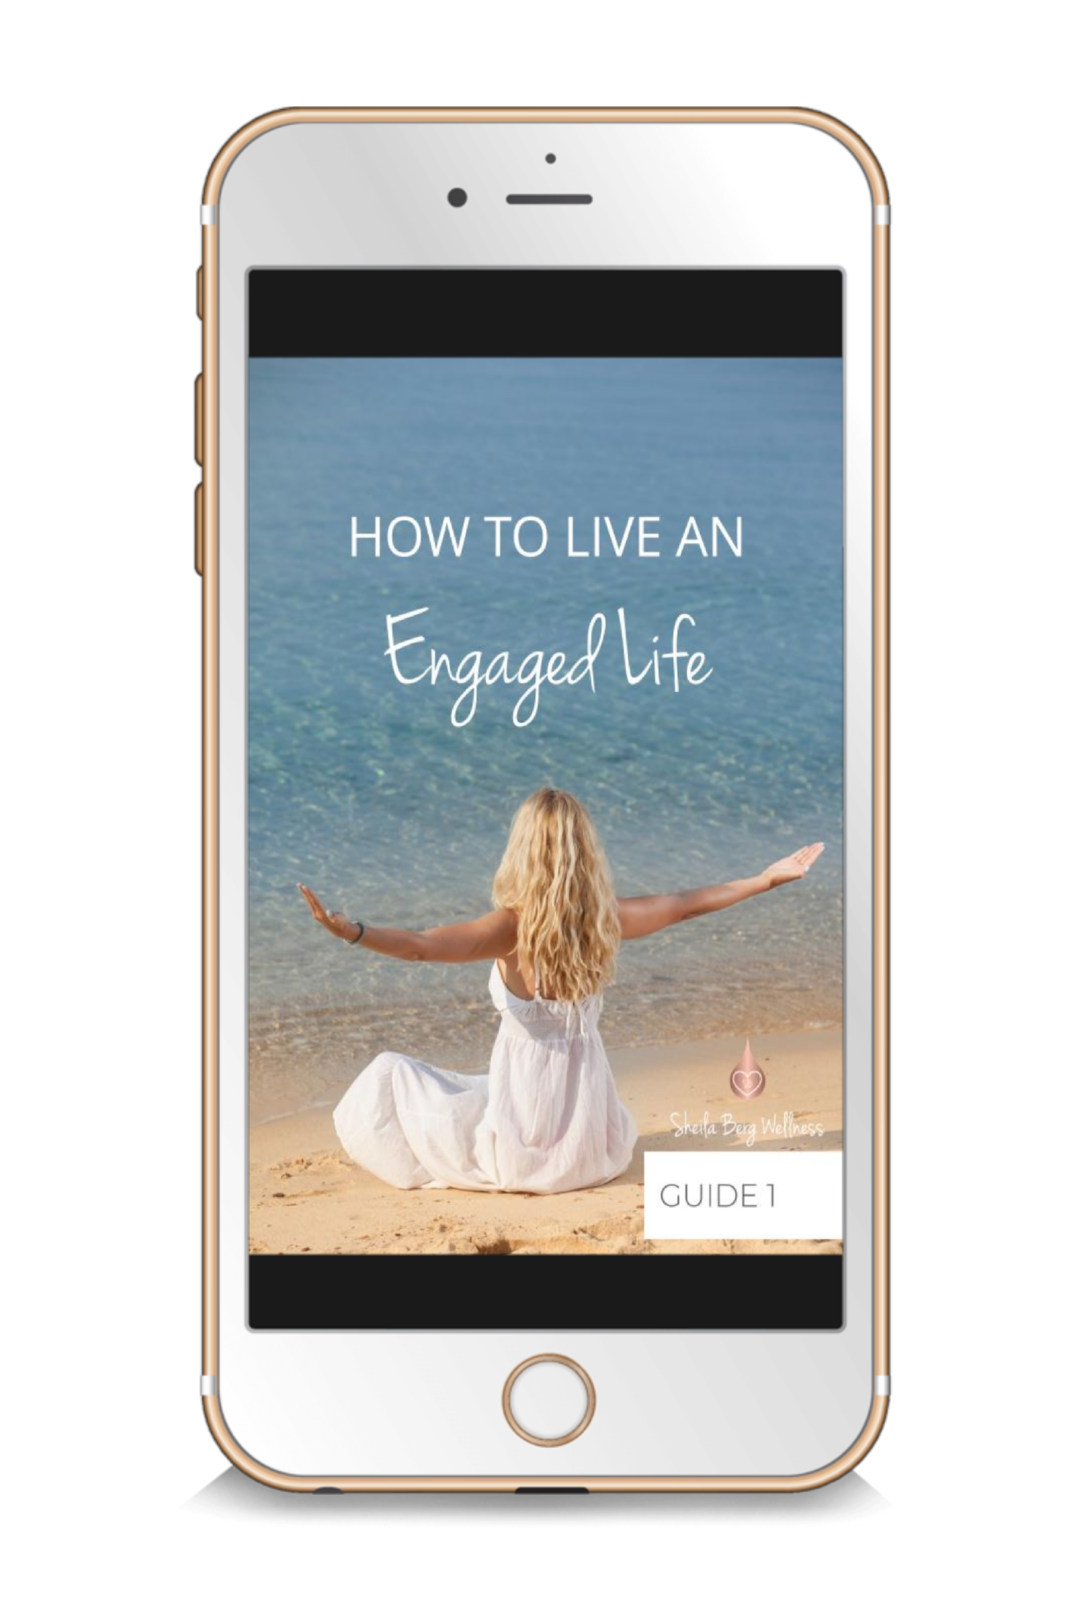 Enaged Life e-book on a gold iphone